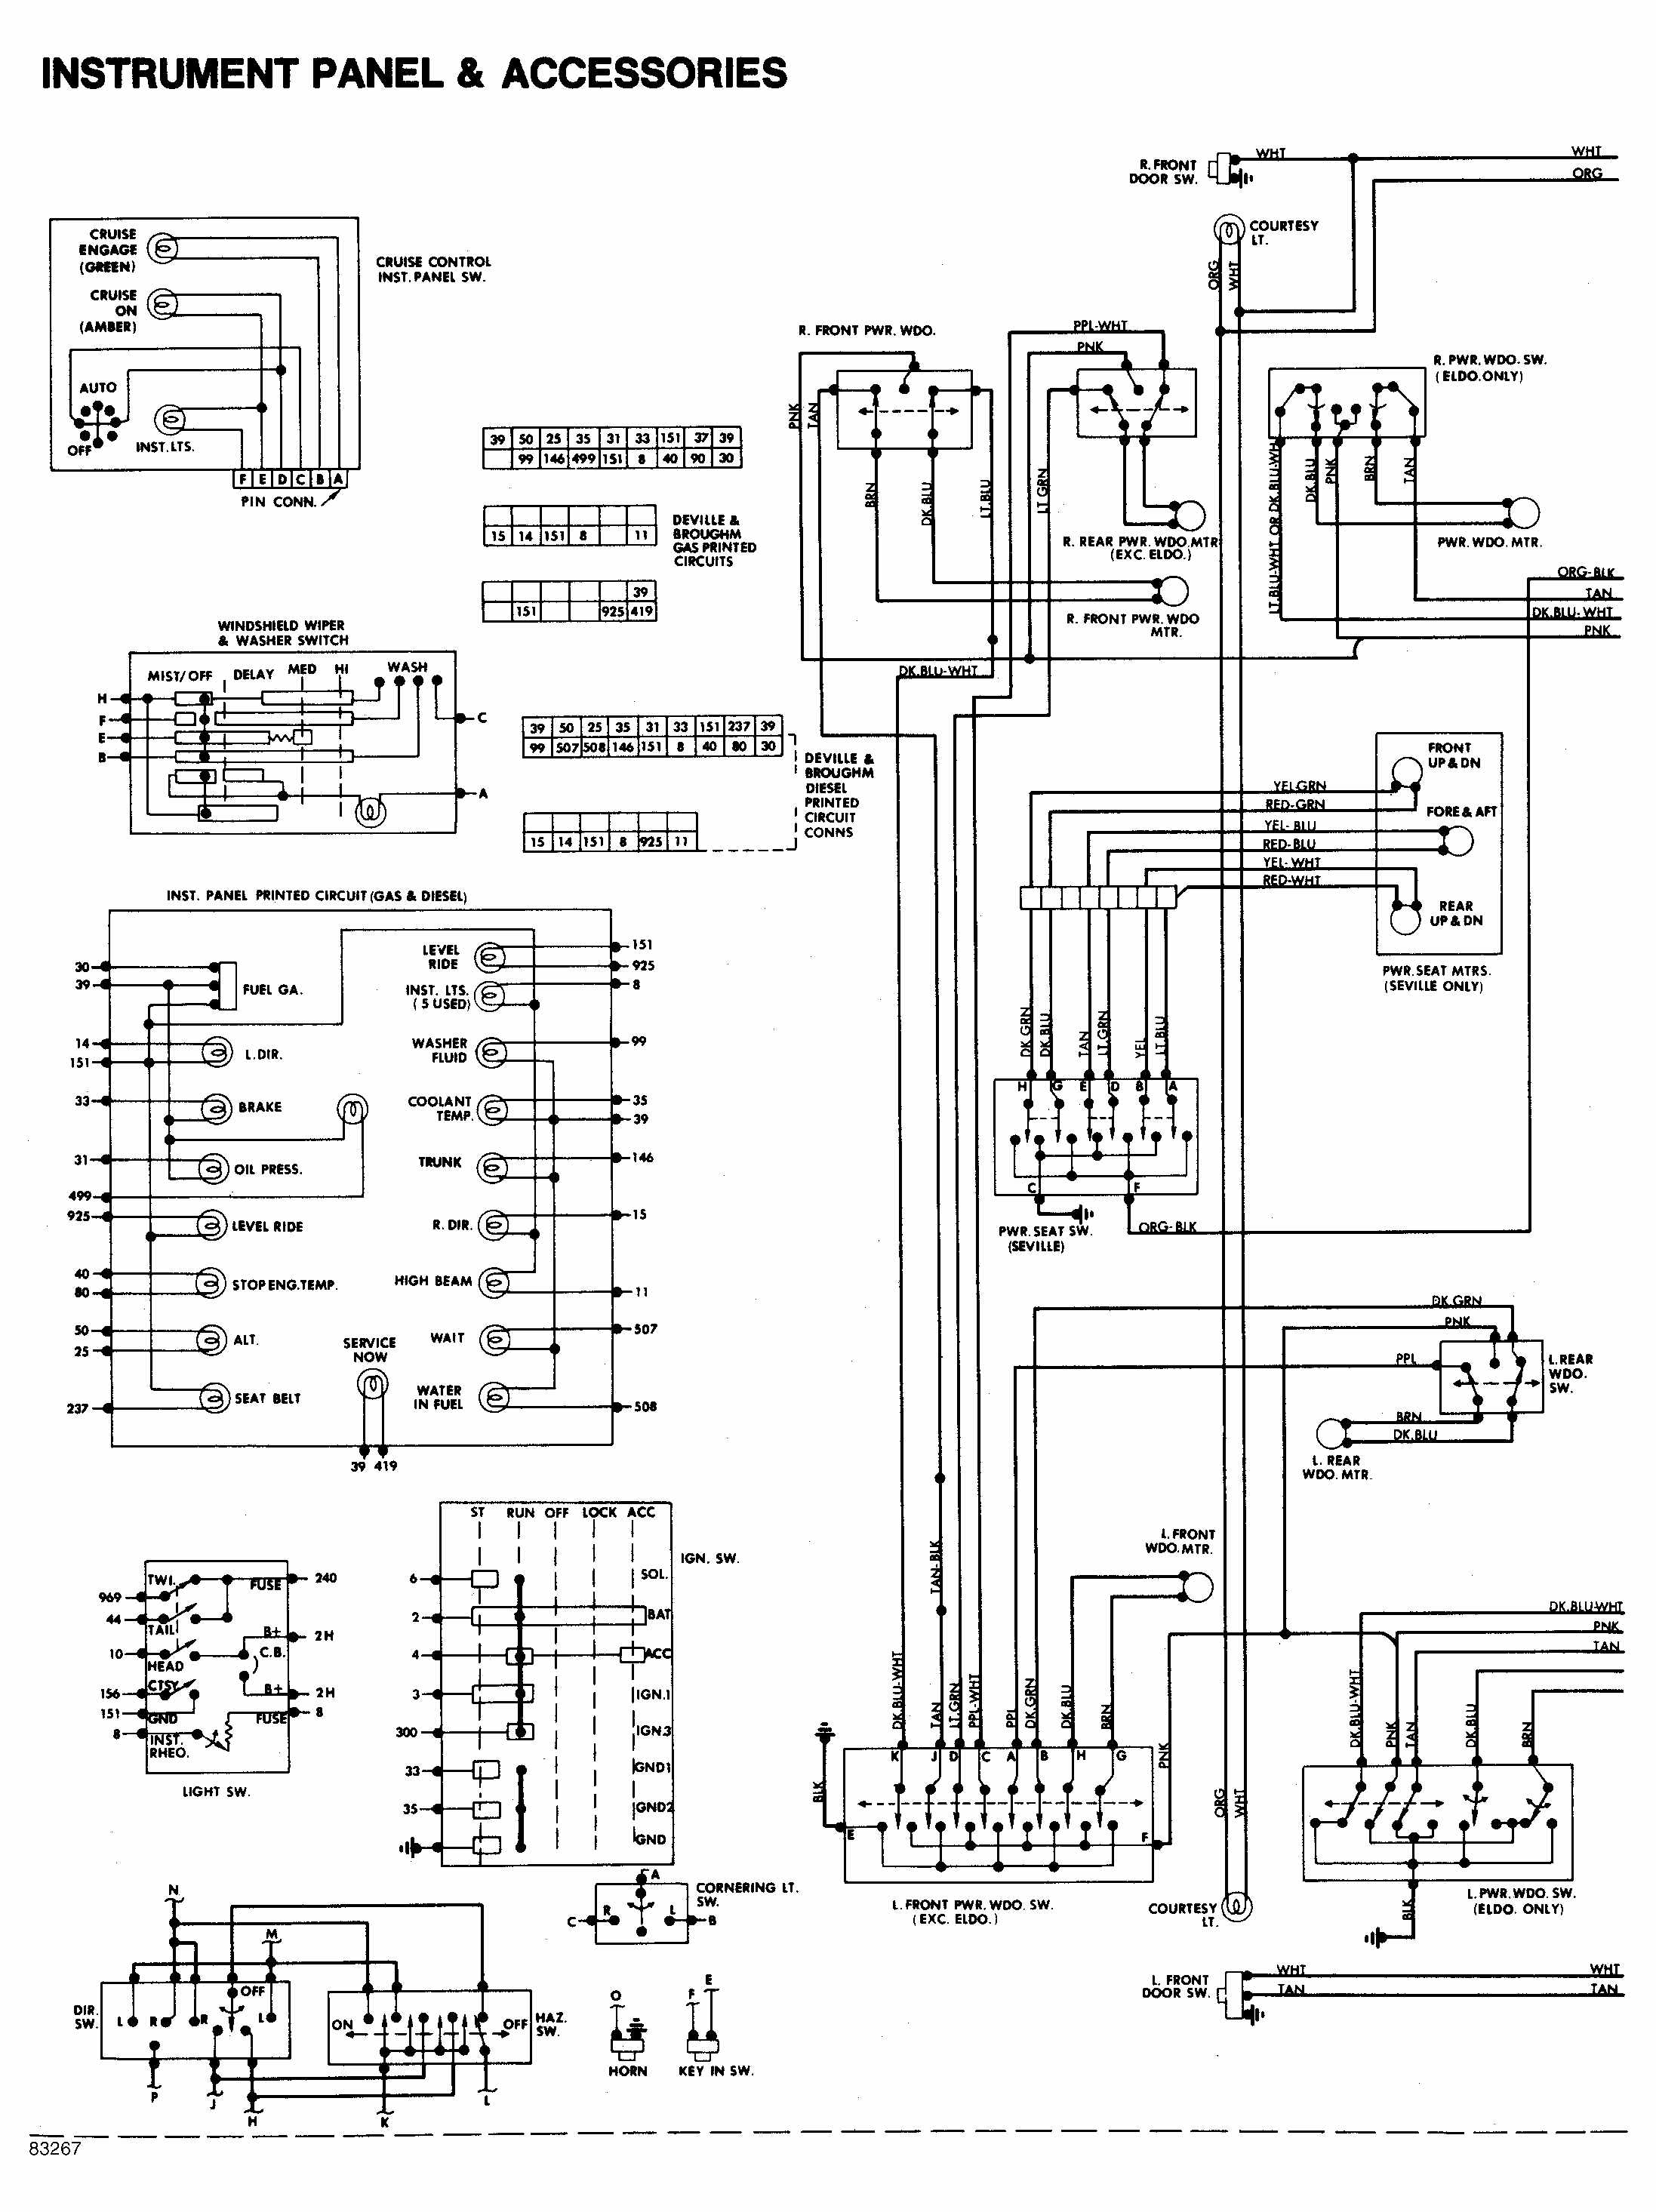 Wiring Diagram For 2000 Cadillac Deville - Diagram Schematic ... on